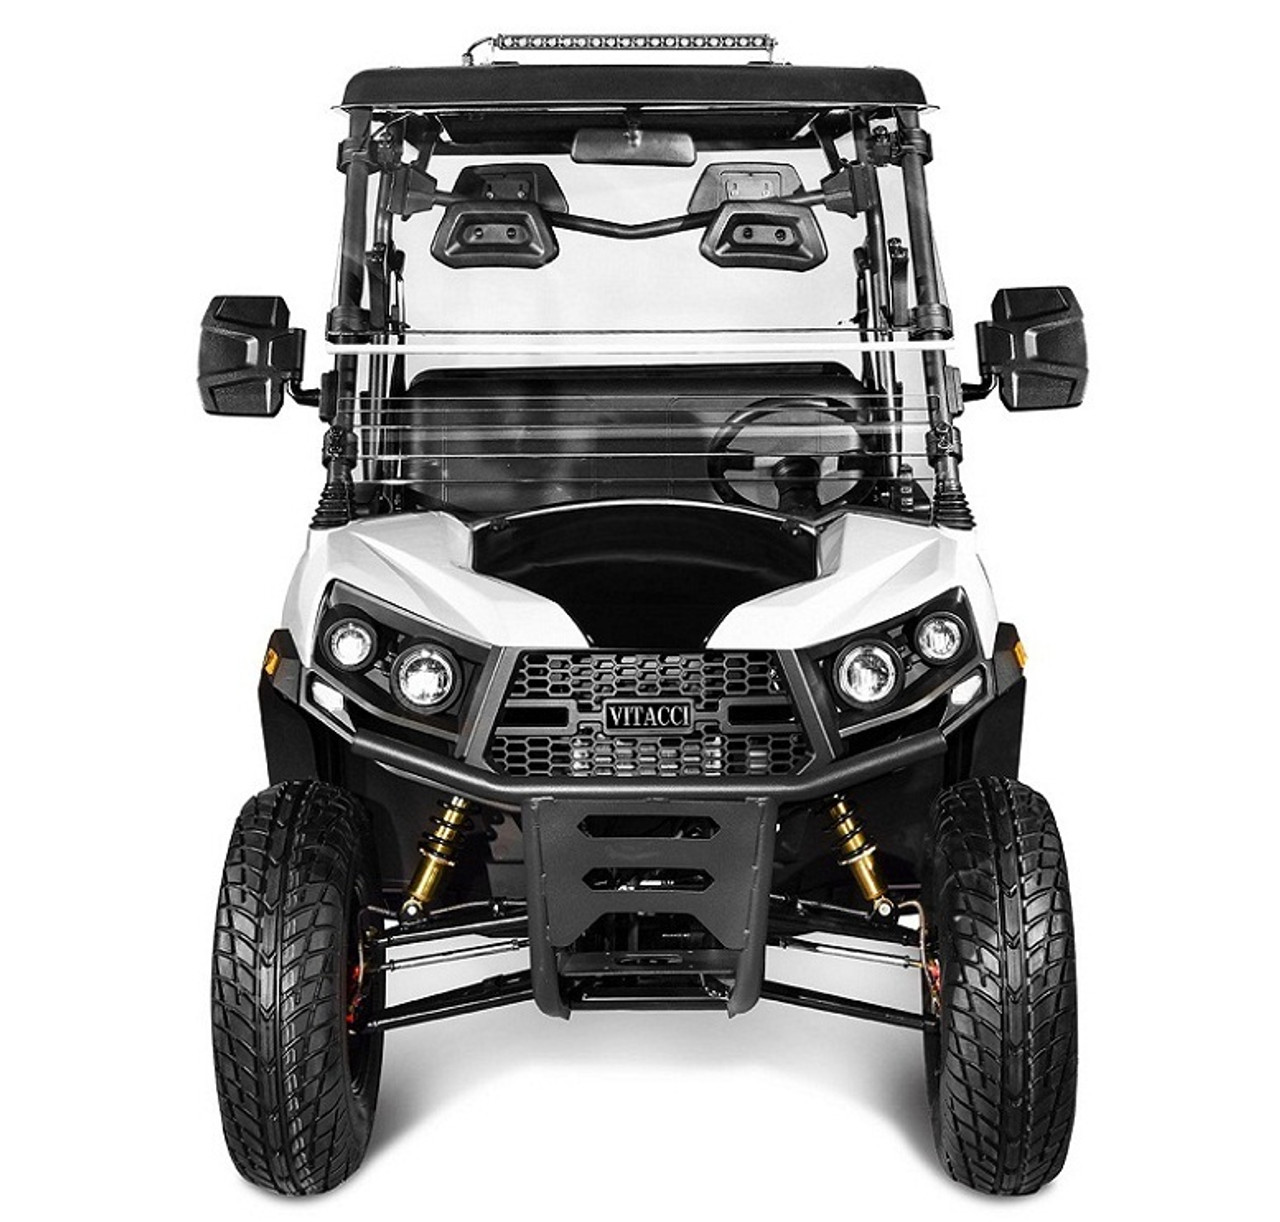 White - Vitacci Rover-200 EFI 169cc (Golf Cart) UTV, 4-stroke, Single-cylinder, Oil-cooled